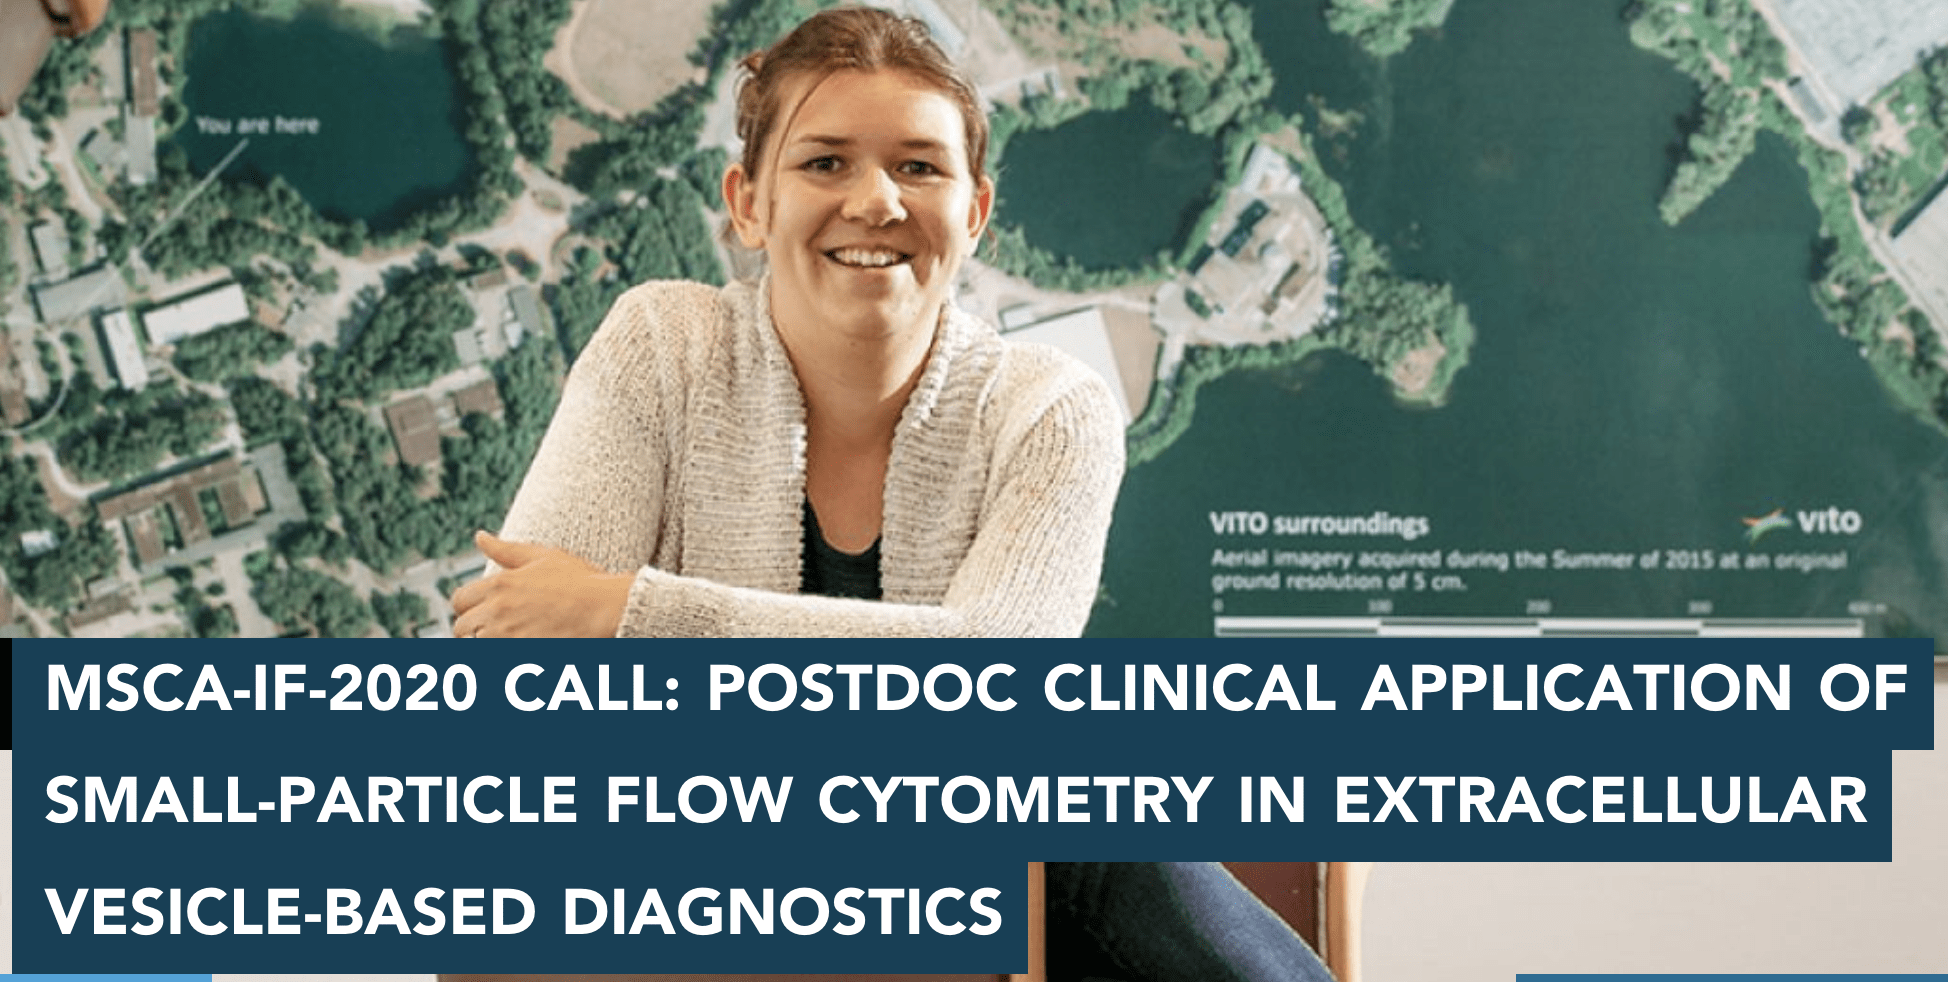 MSCA-IF job offer at VITO, Belgium Post-doc on extracellular vesicle-based diagnostics